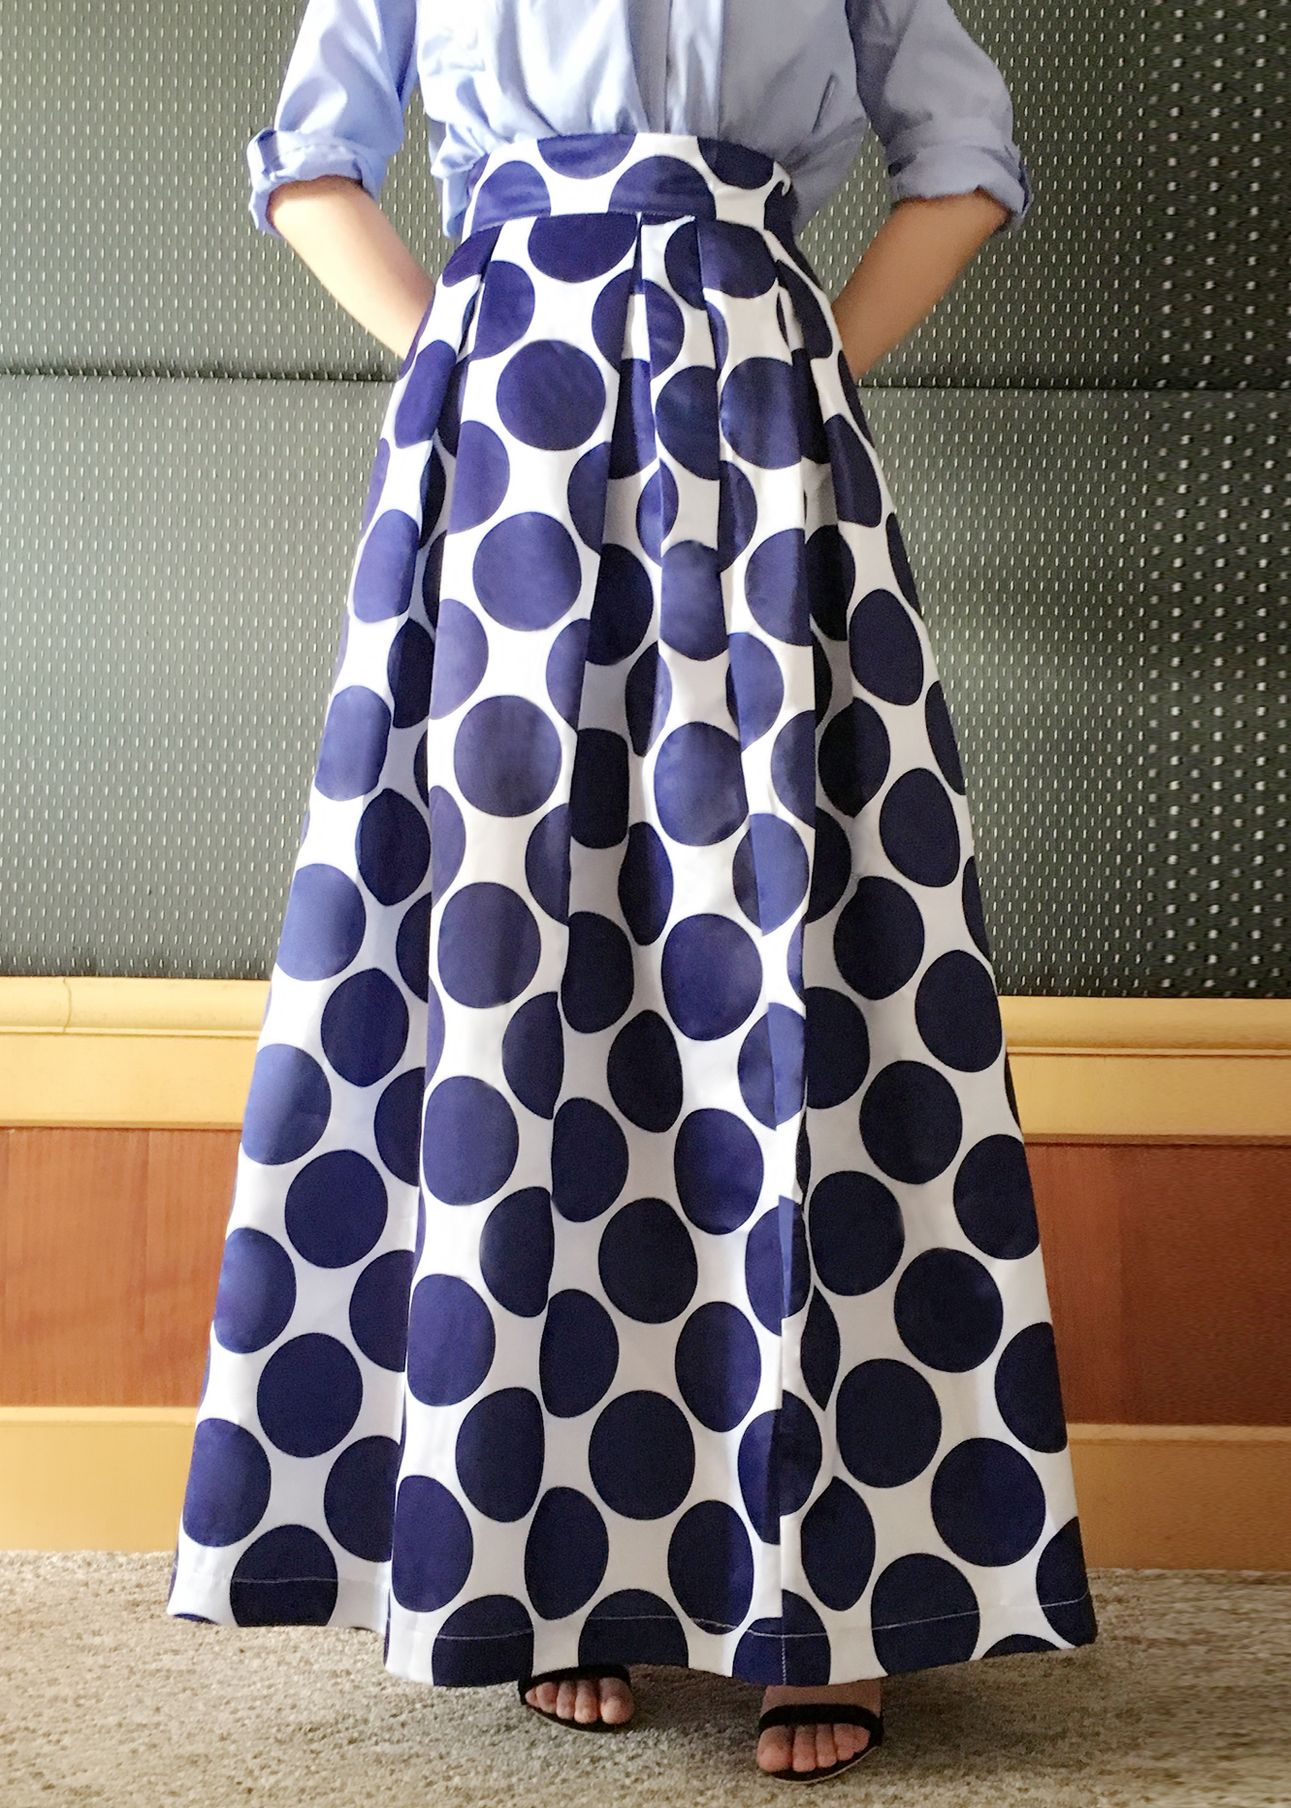 Color Block Polka Dot Print High Waist Skirt  Oasapcom